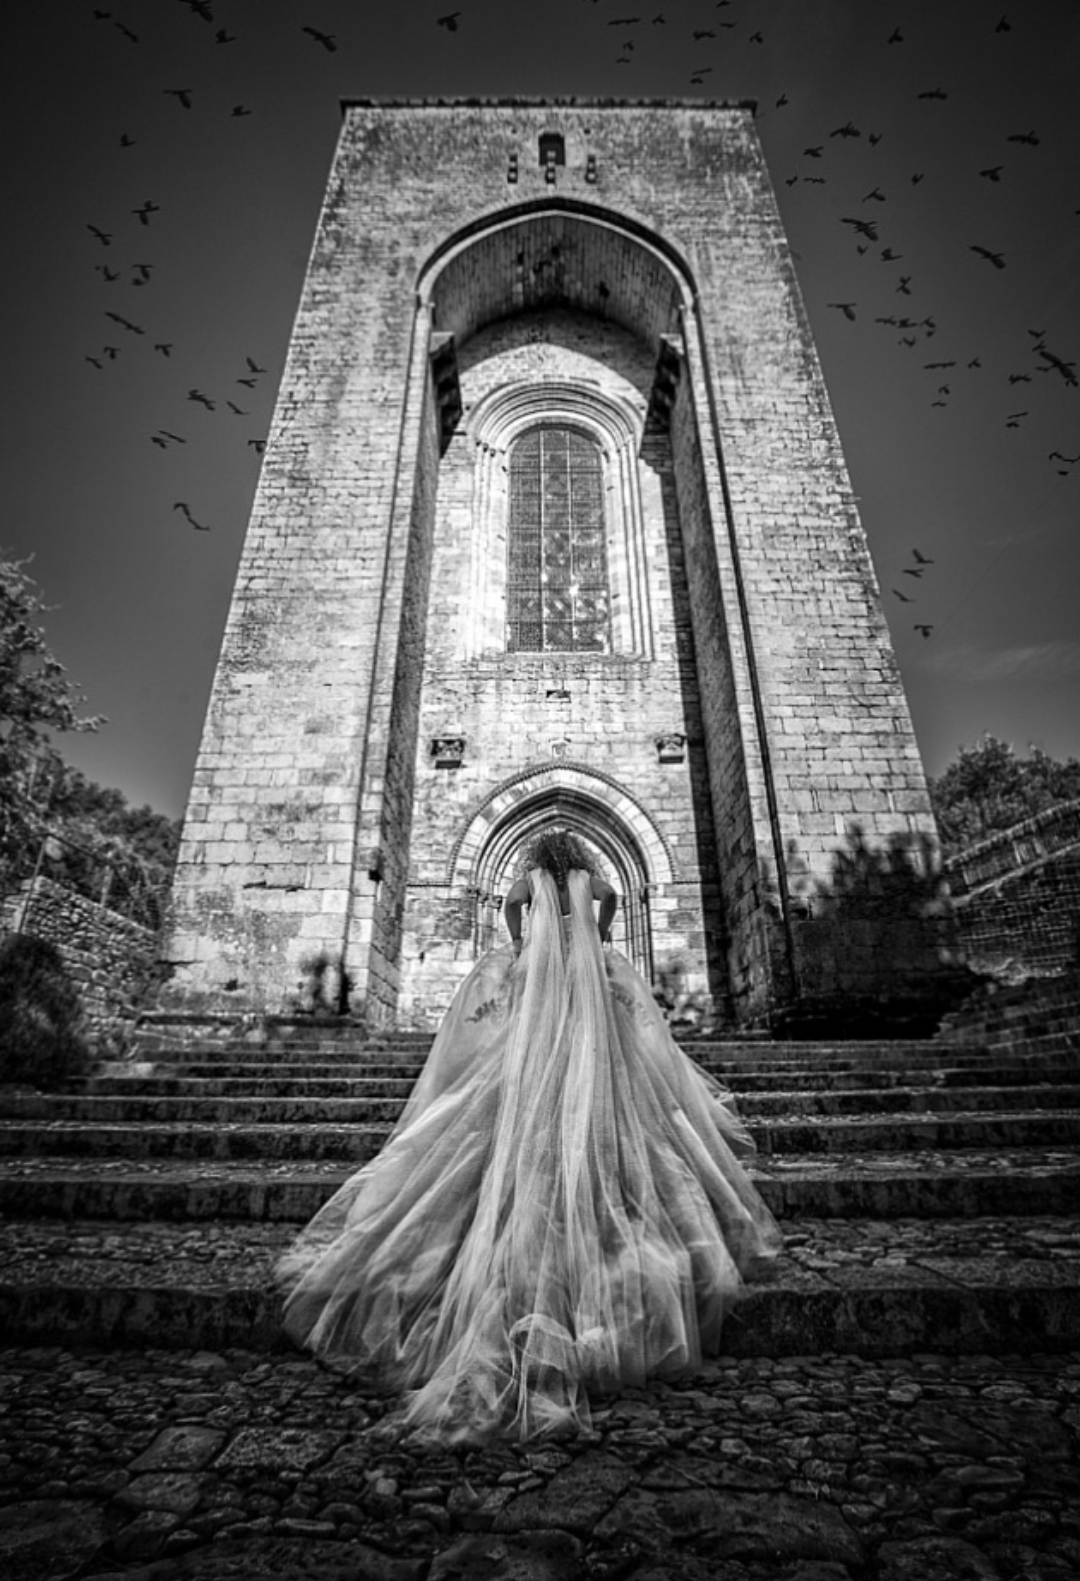 Monochrome capture of a bride climbing up the stairs followed by her huge veil